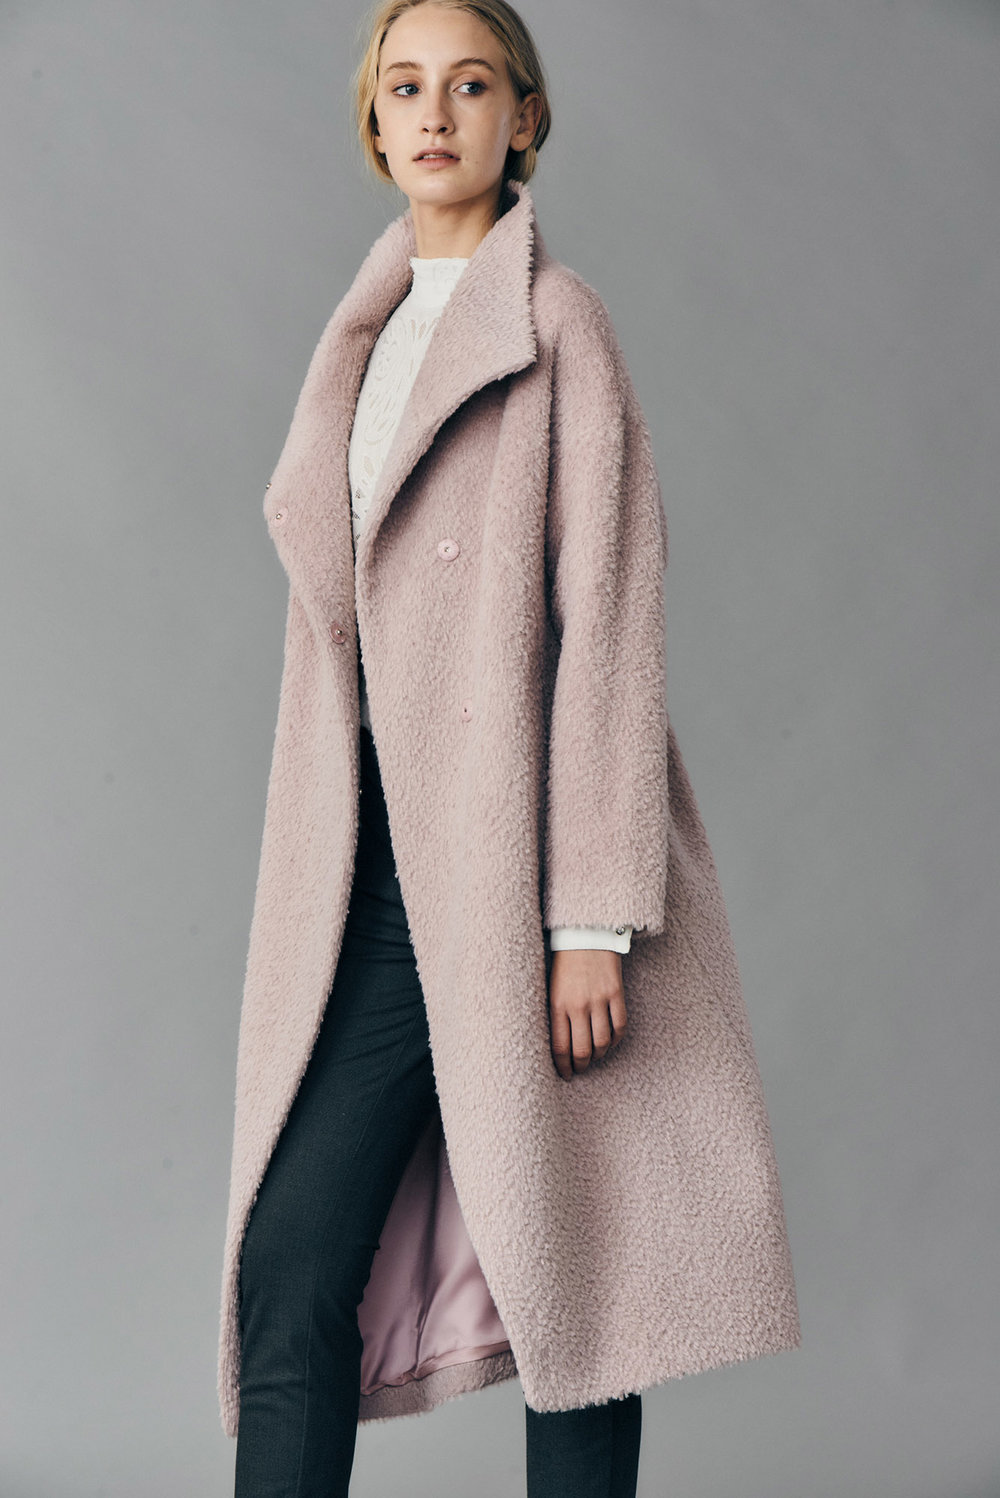 COAT JAZMIN AT-336   Colors:  soft rose   Sizes: XS, S, M, L, XL